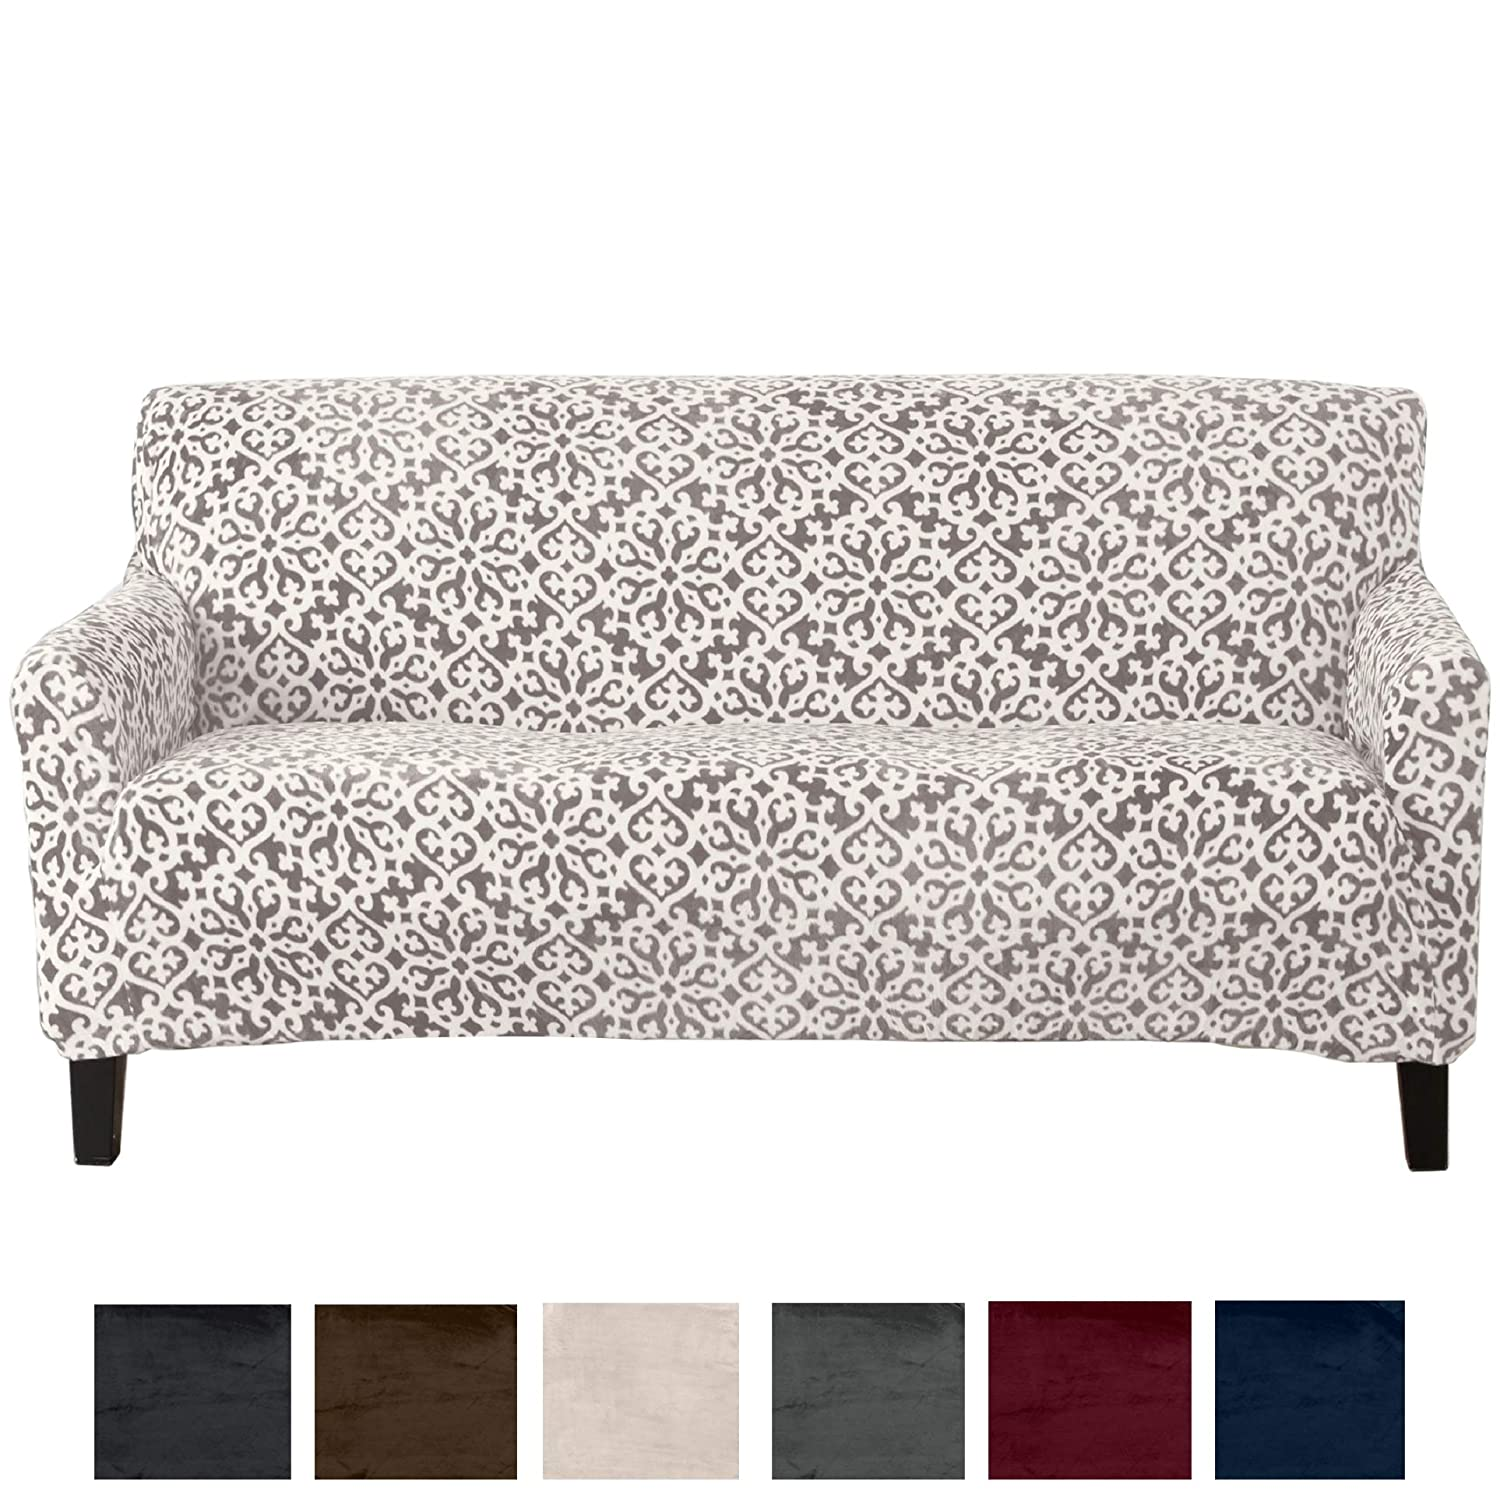 Great Bay Home Modern Velvet Plush Strapless Slipcover. Form Fit Stretch, Stylish Furniture Cover/Protector. Gale Collection Brand. (Sofa, Snowflake - Wild Dove Grey)